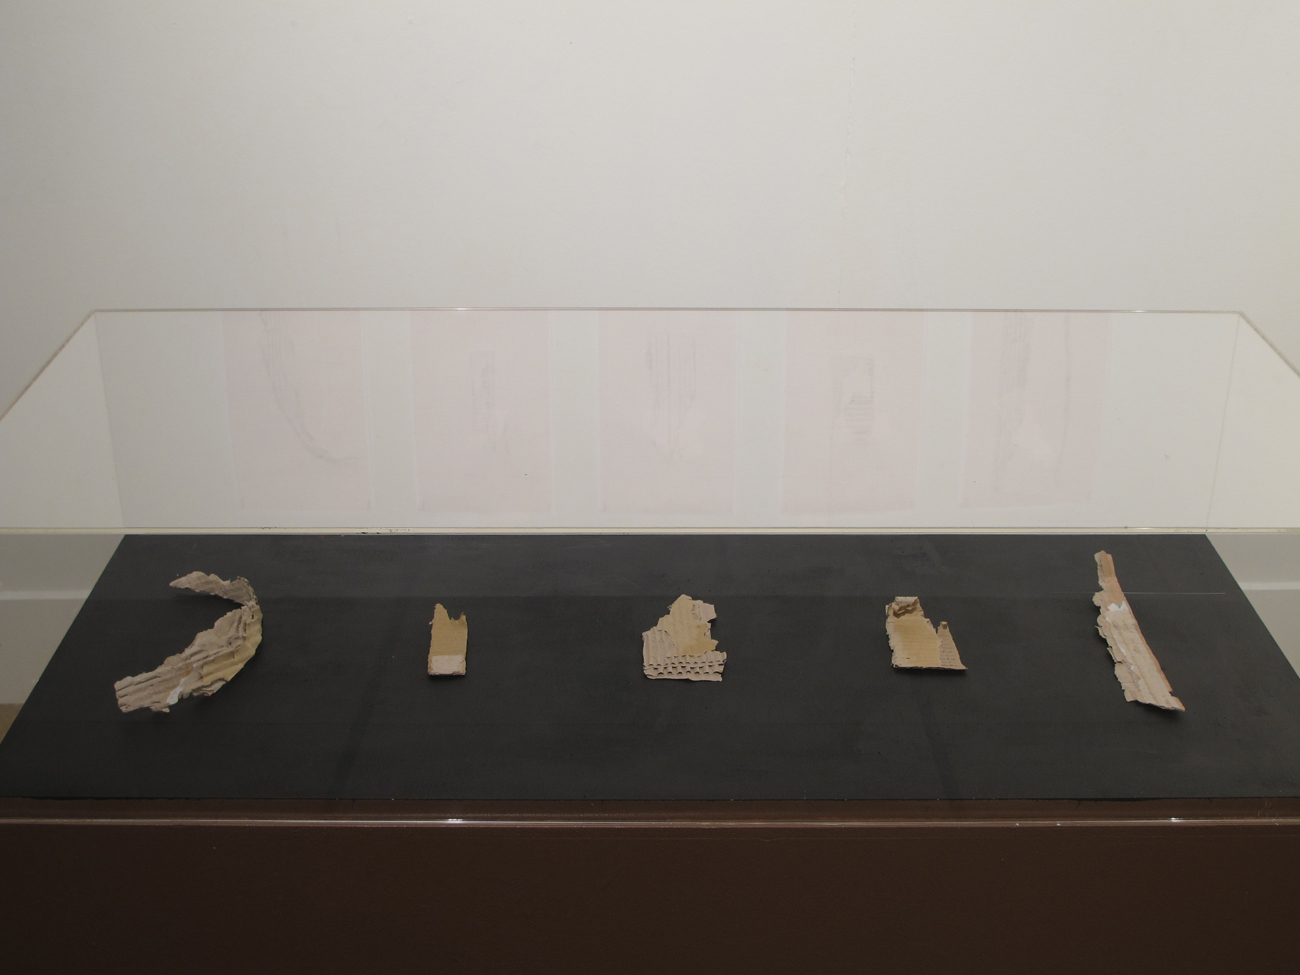 museum display with cardboard fragments